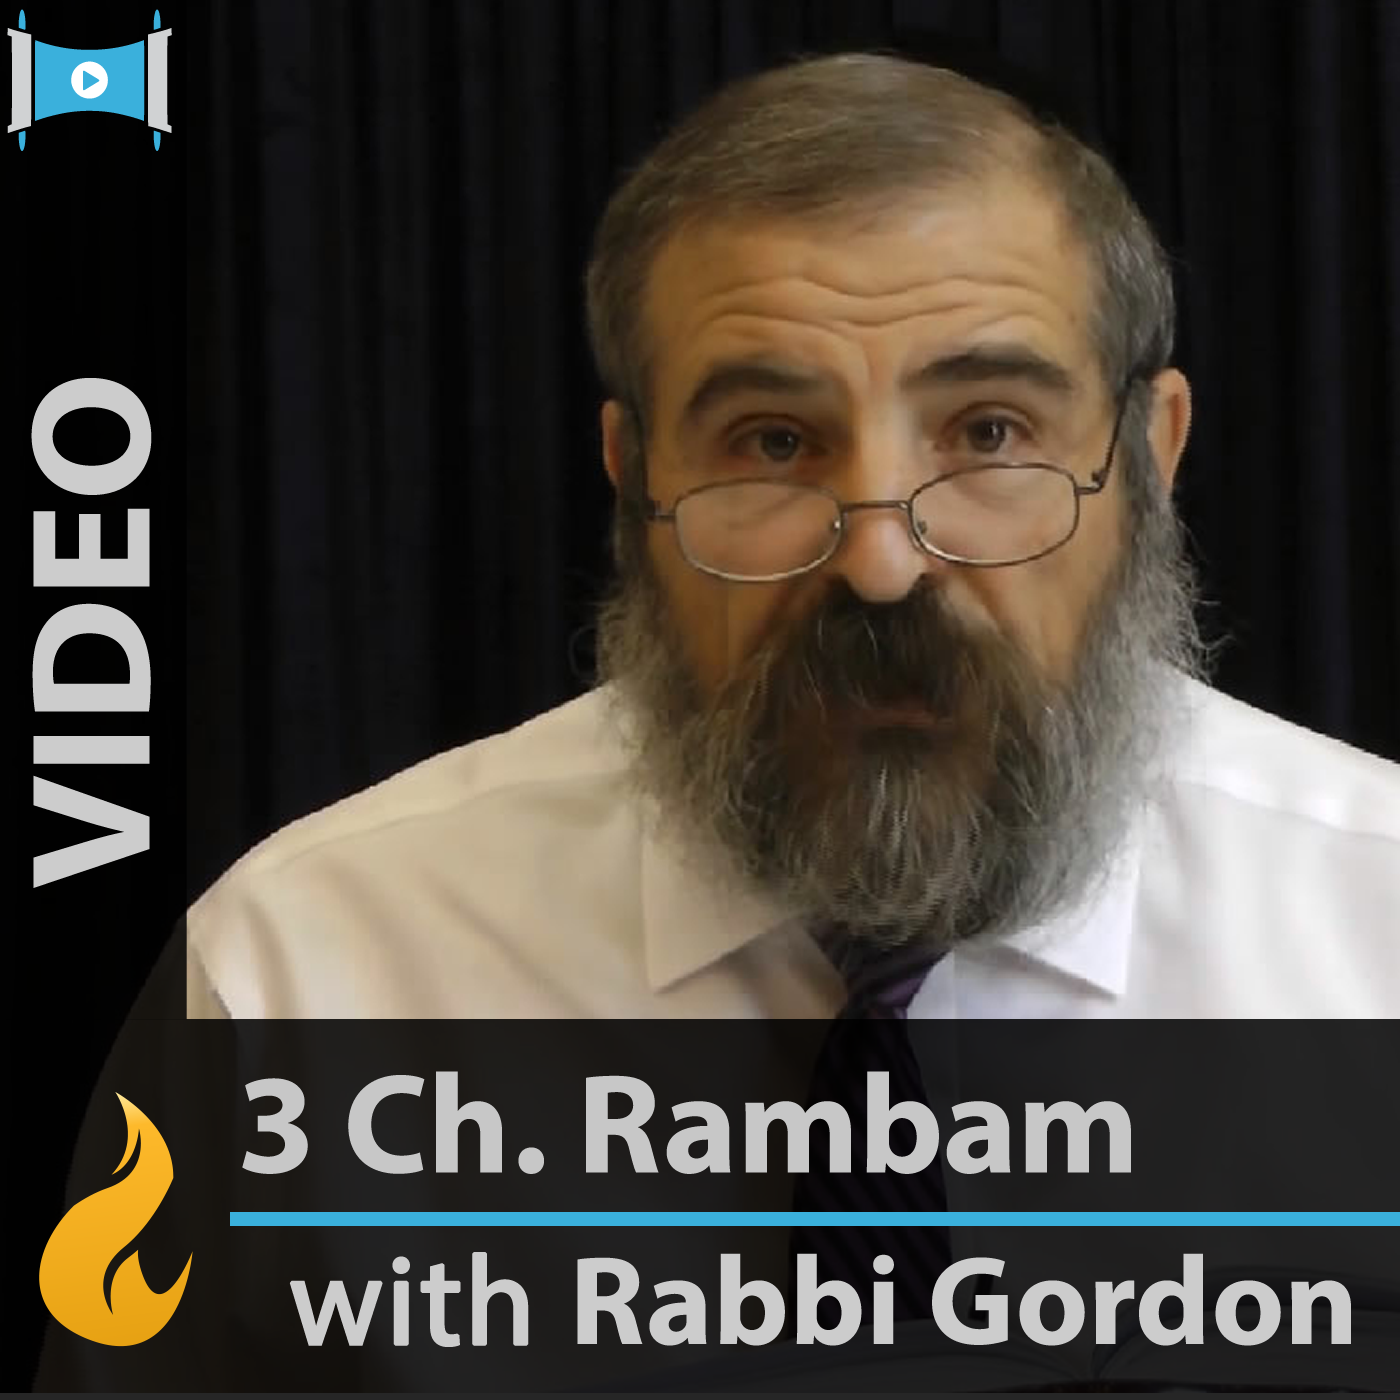 Rambam - 3 Chapters a Day (Video)